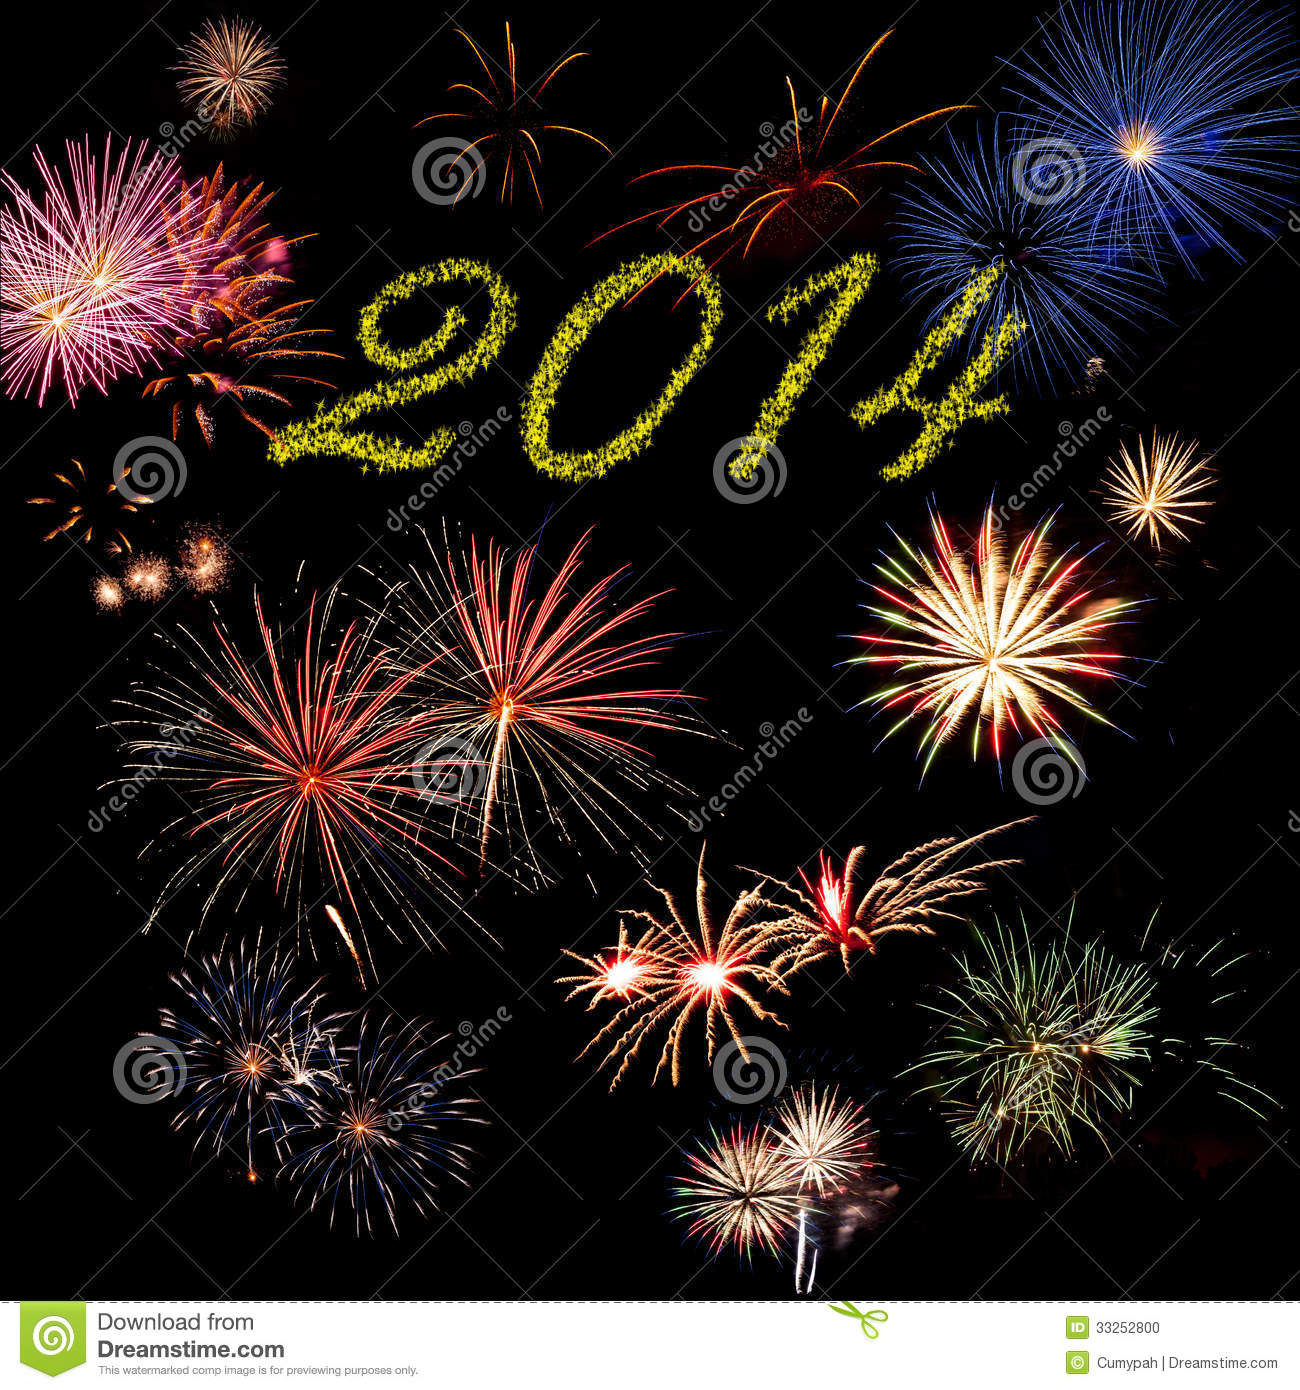 2014 New Year Holiday Fireworks Stock Photo - Image of